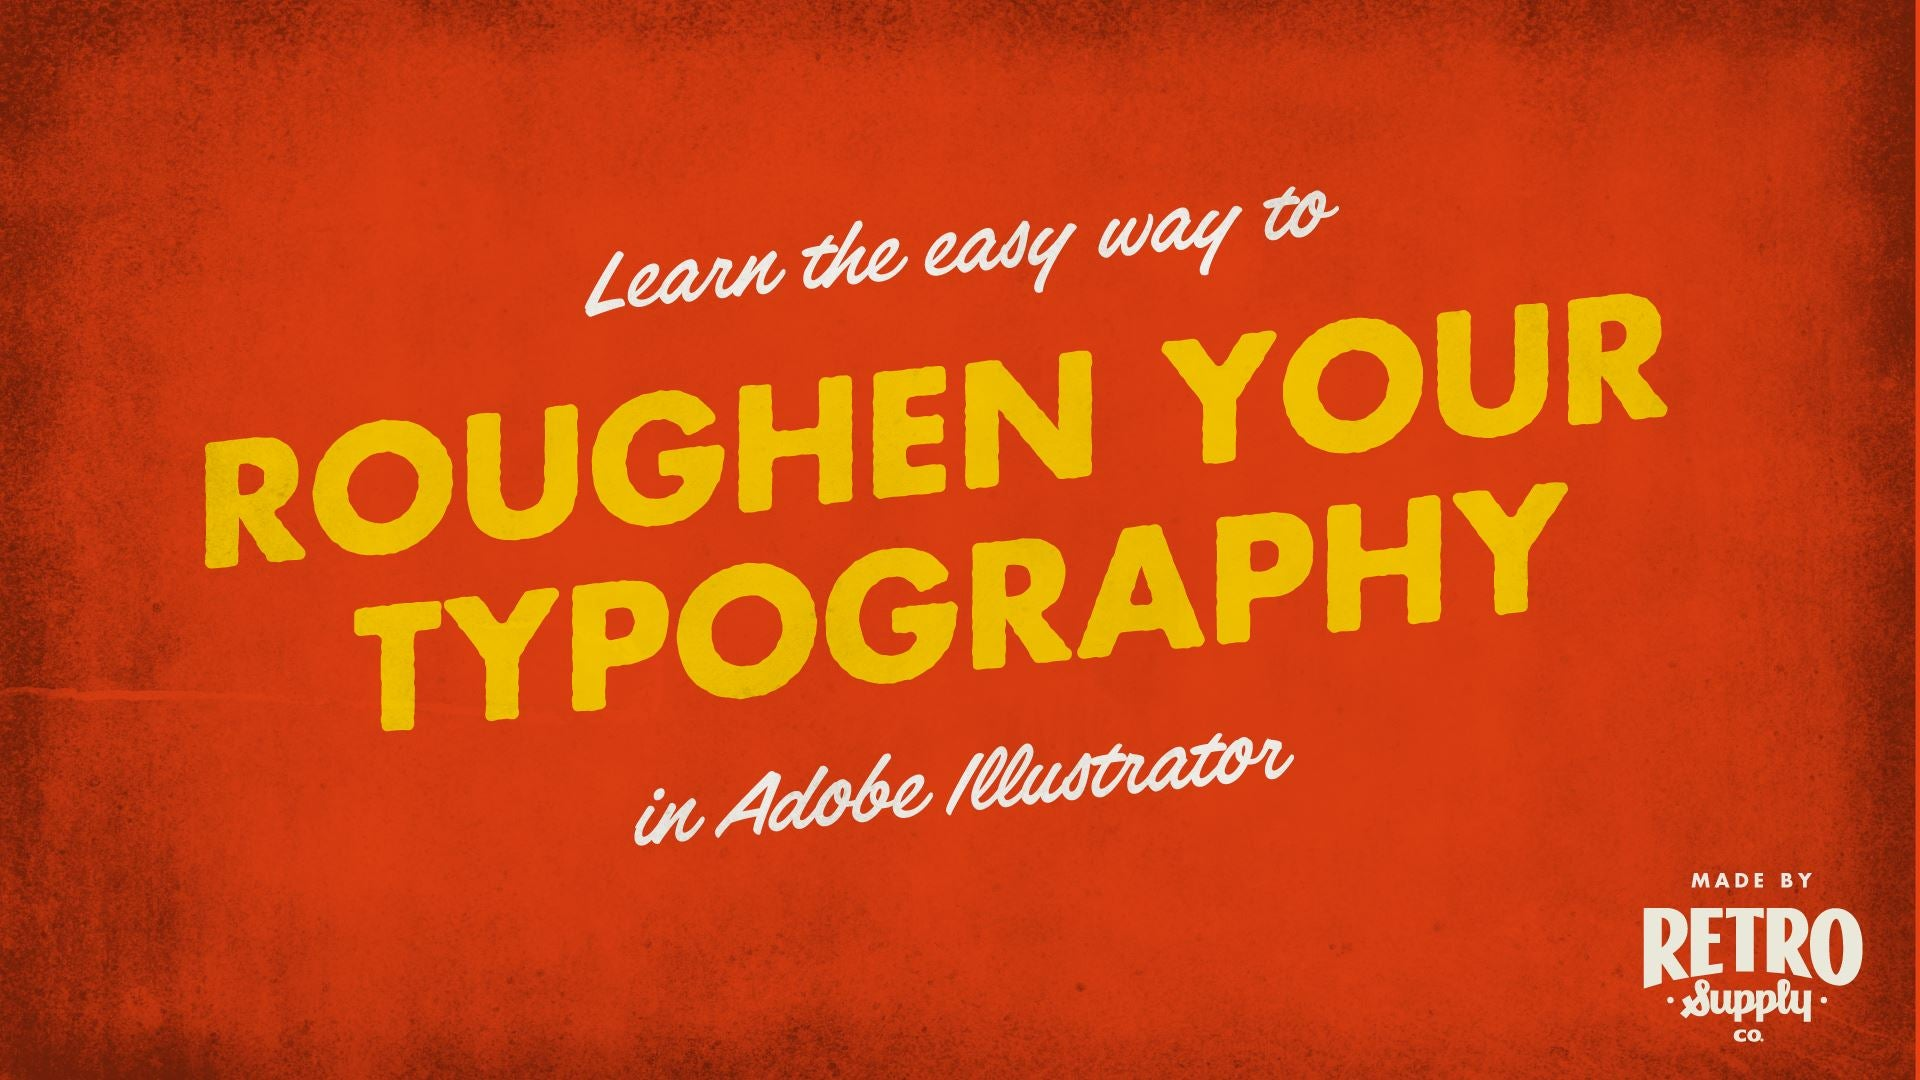 The Easy Way to Roughen Your Typography in Illustrator